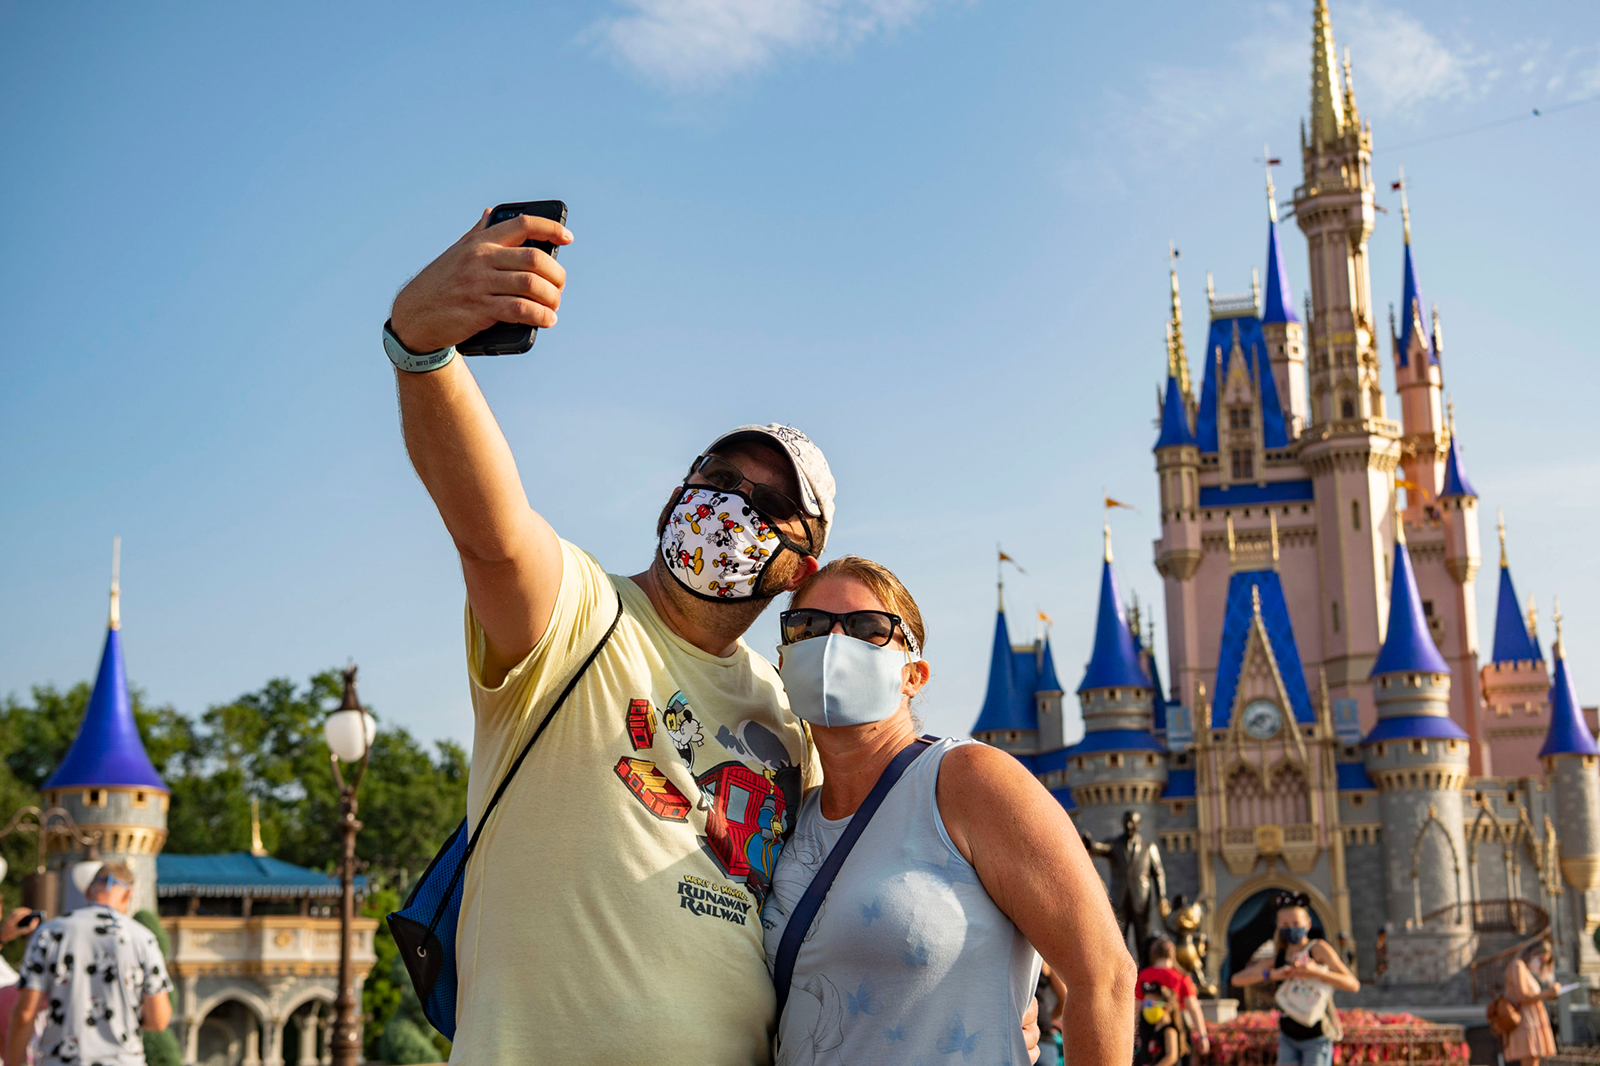 Guests stop to take a selfie at Magic Kingdom Park at Walt Disney World Resort on July 11, in Lake Buena Vista, Florida.